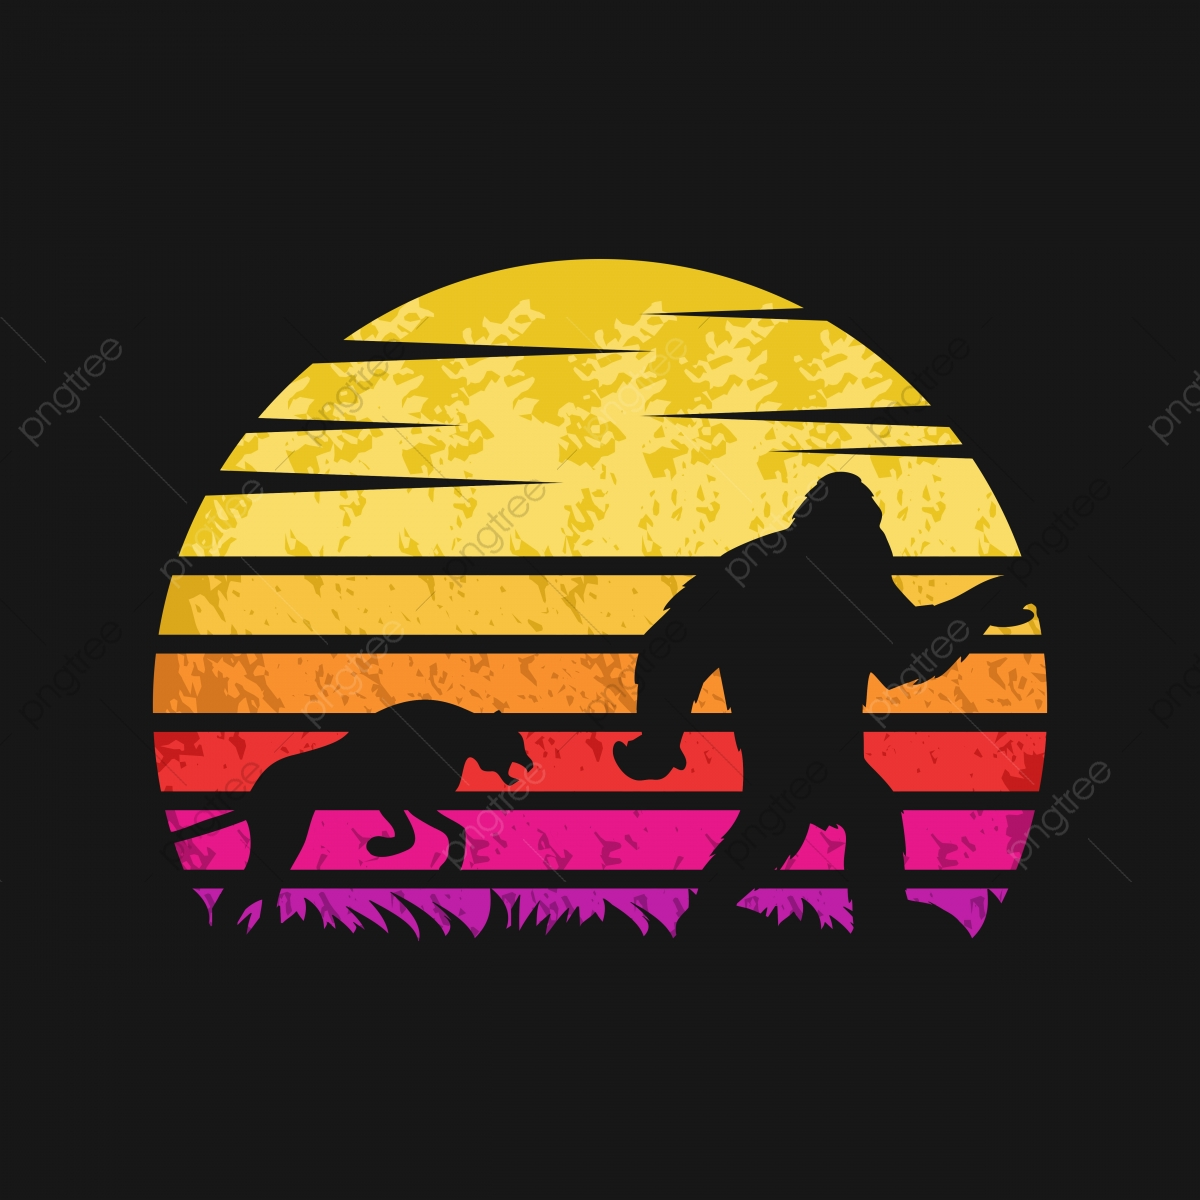 pngtree yeti and cheetah sunset retro vector illustration png image 4129261